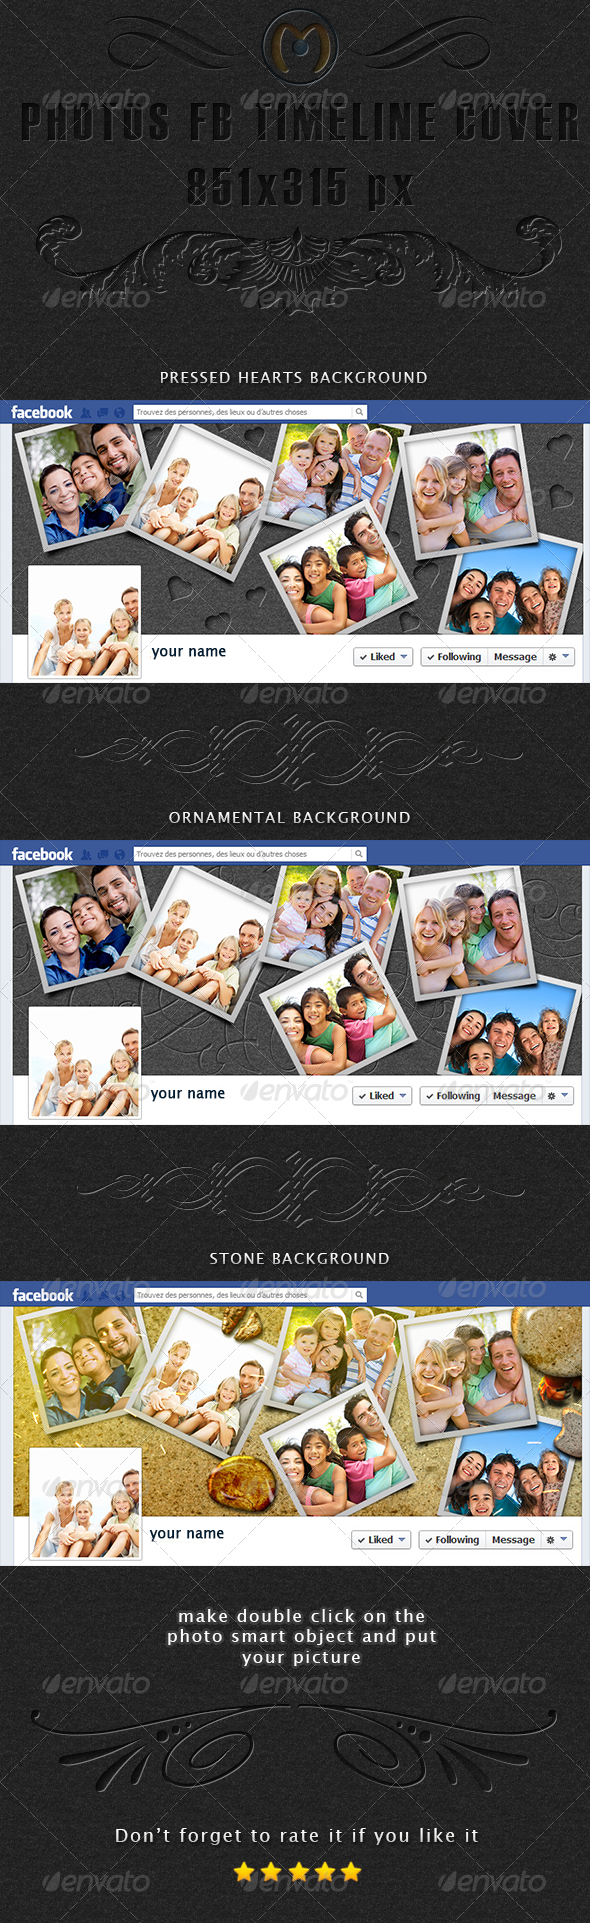 Photos Facebook Timeline Cover